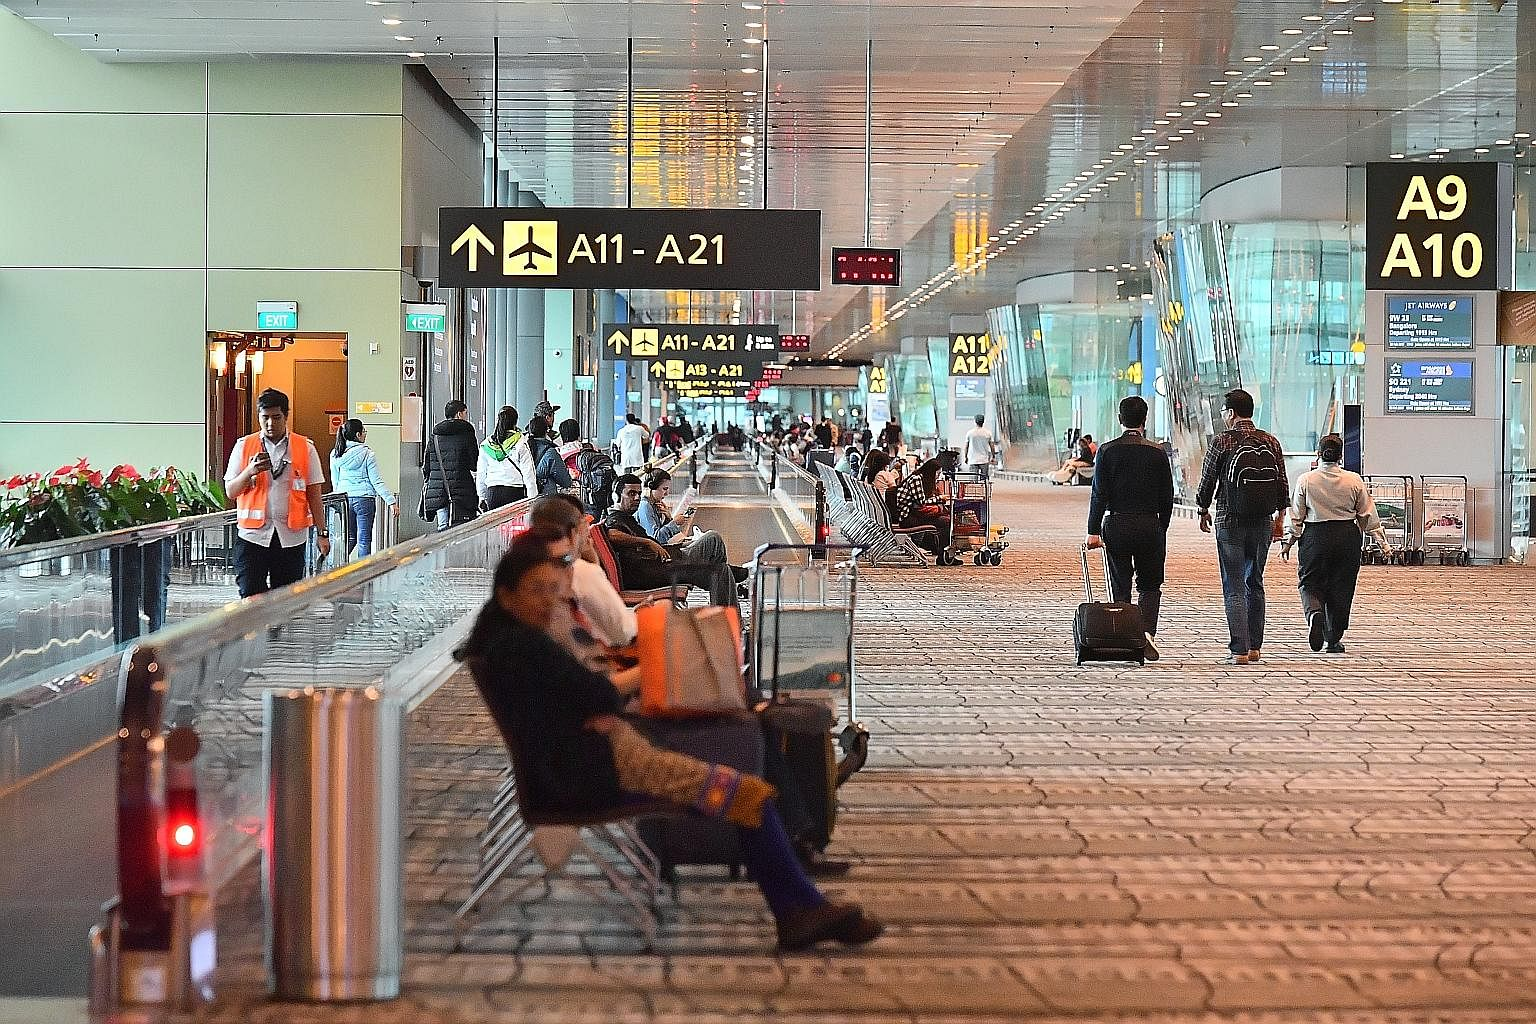 With rising affluence, more people have taken to the skies and many are also travelling more frequently, says the writer. This makes it important for travellers to know their rights when it comes to air travel and what they can do to pass some of the